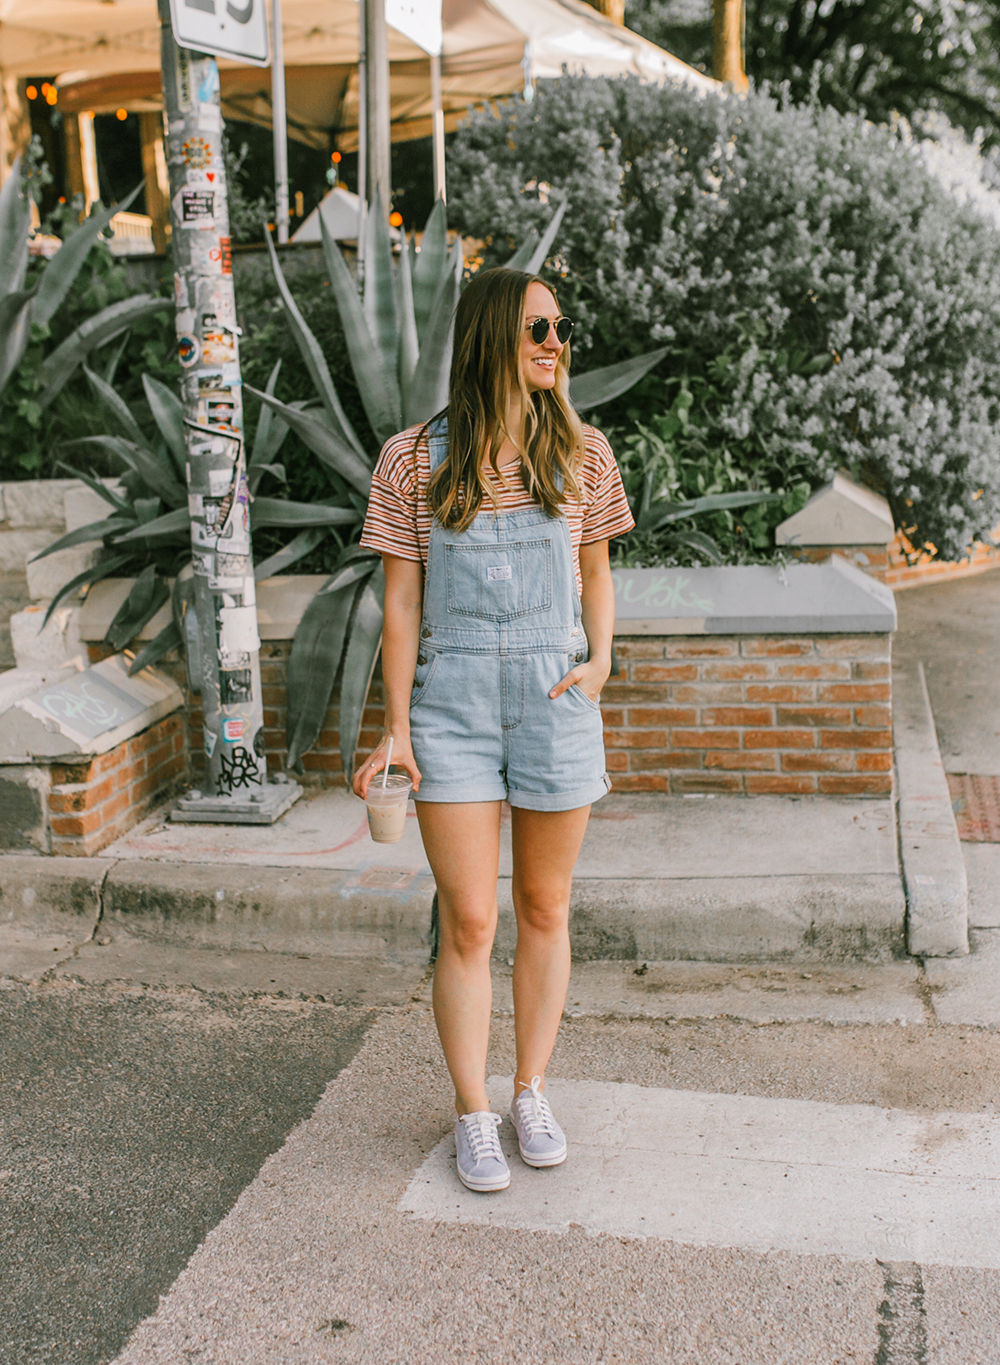 livvyland-blog-olivia-watson-austin-texas-lifestyle-fashion-style-blogger-grey-keds-sneakers-overalls-summer-outfit-6